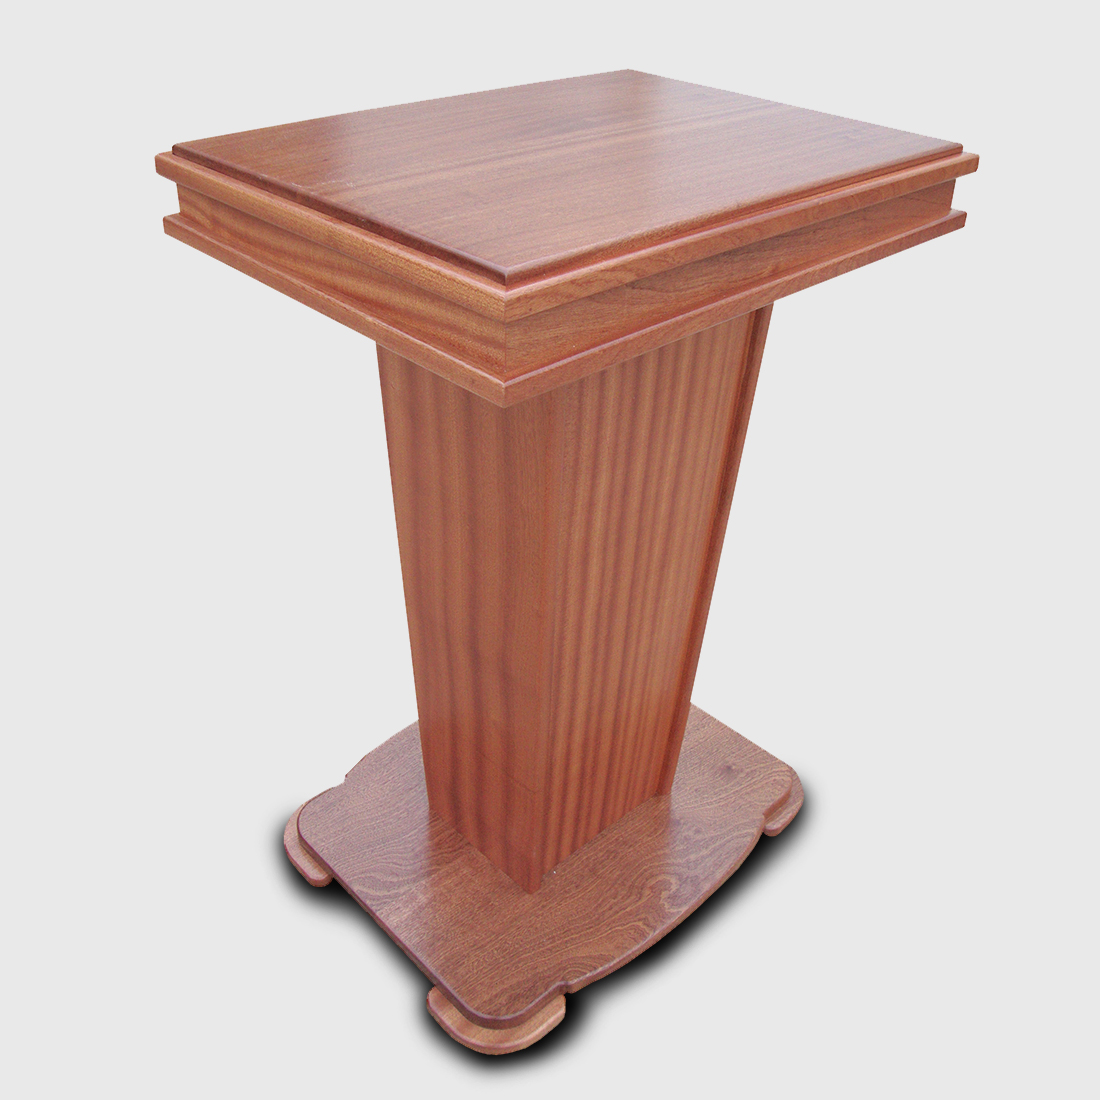 communion table 05 - turning leaf